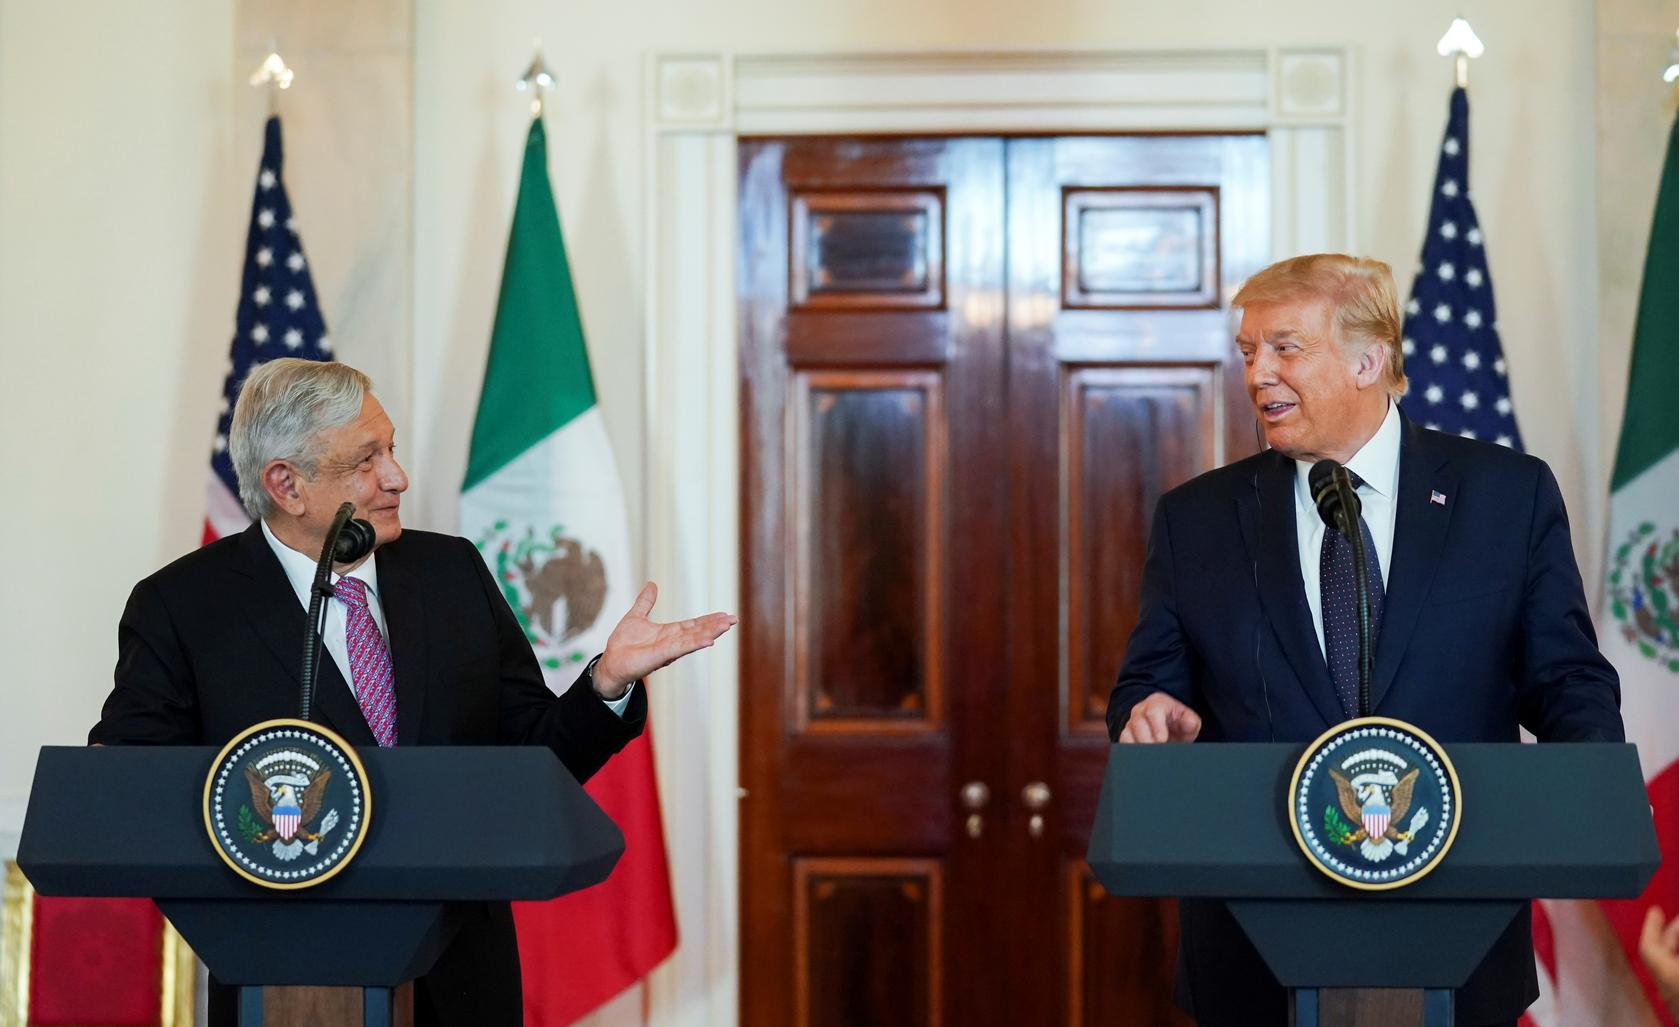 Attitudes of Mexicans in Mexico toward the 2020 U.S. Presidential Election